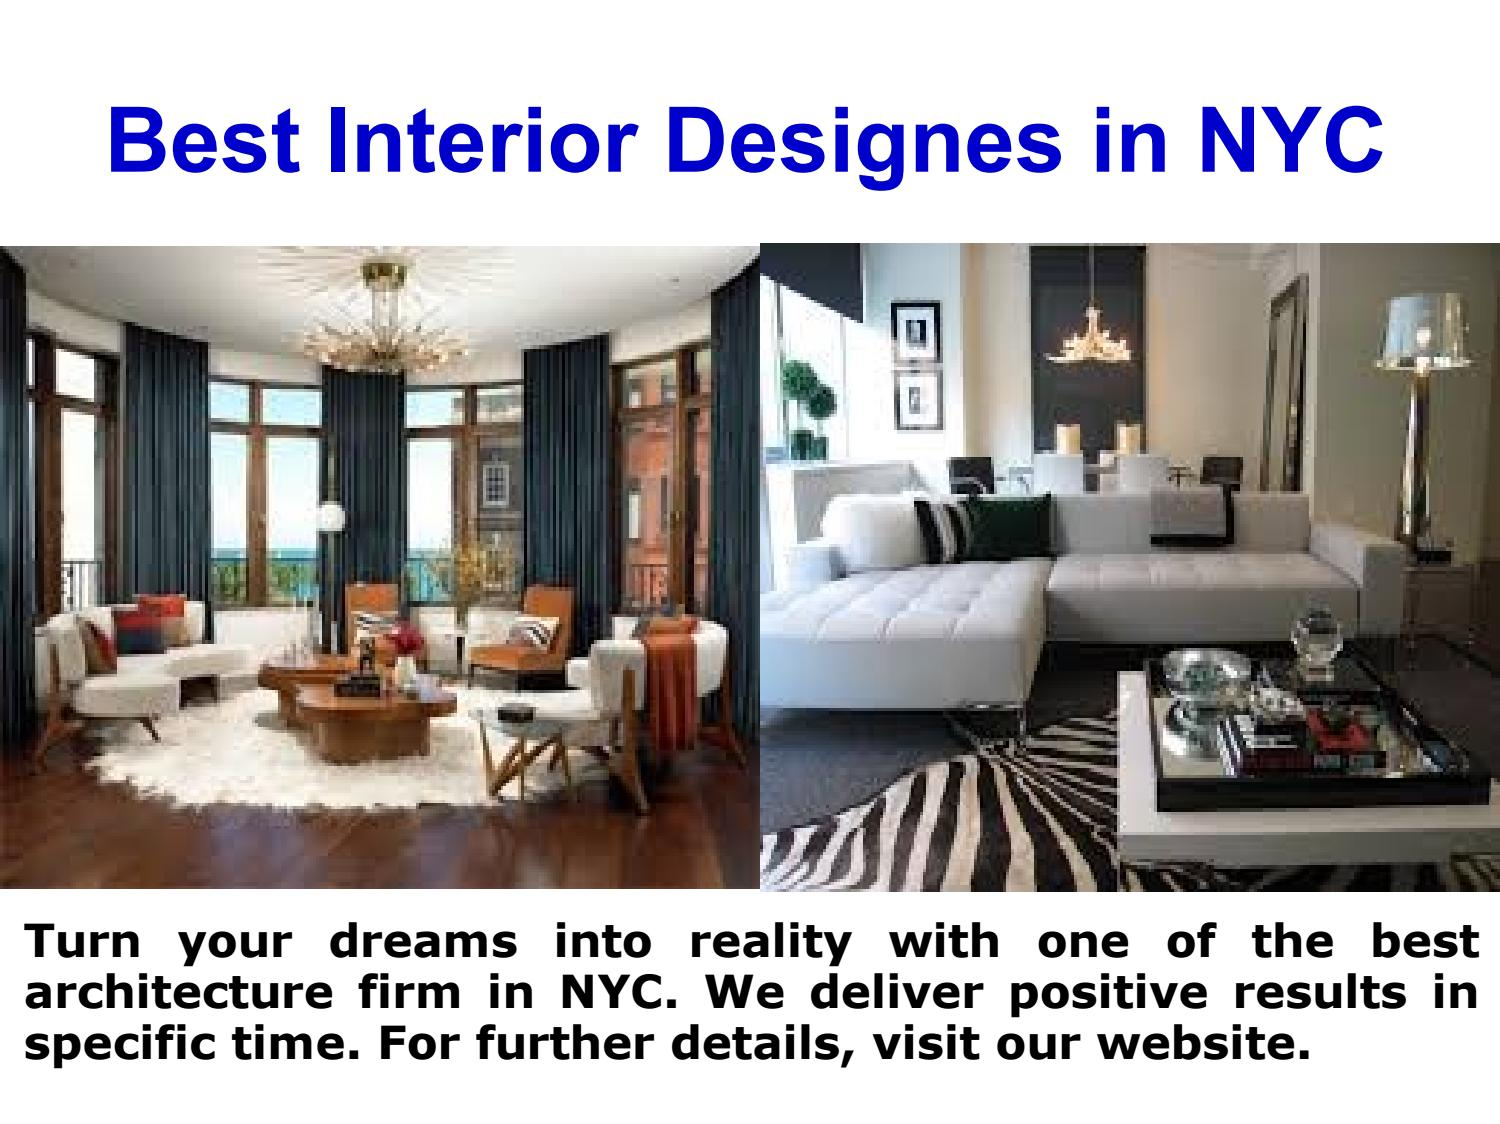 Best Residential Architect Firm In Nyc By Victoria Benatar